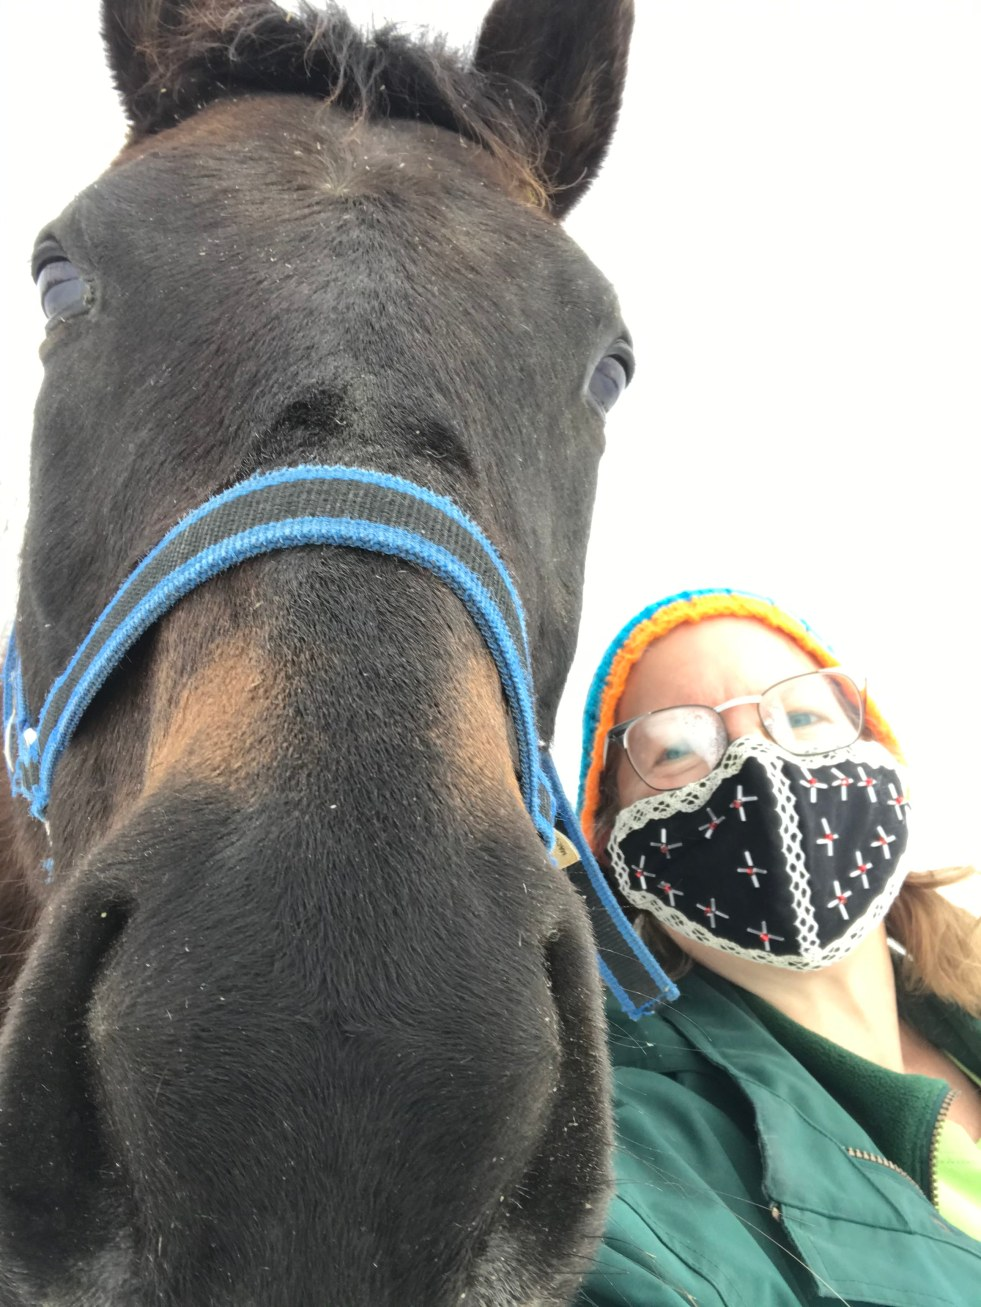 Selfie of a woman in a black mask, with an extreme close-up of a brown horse's head